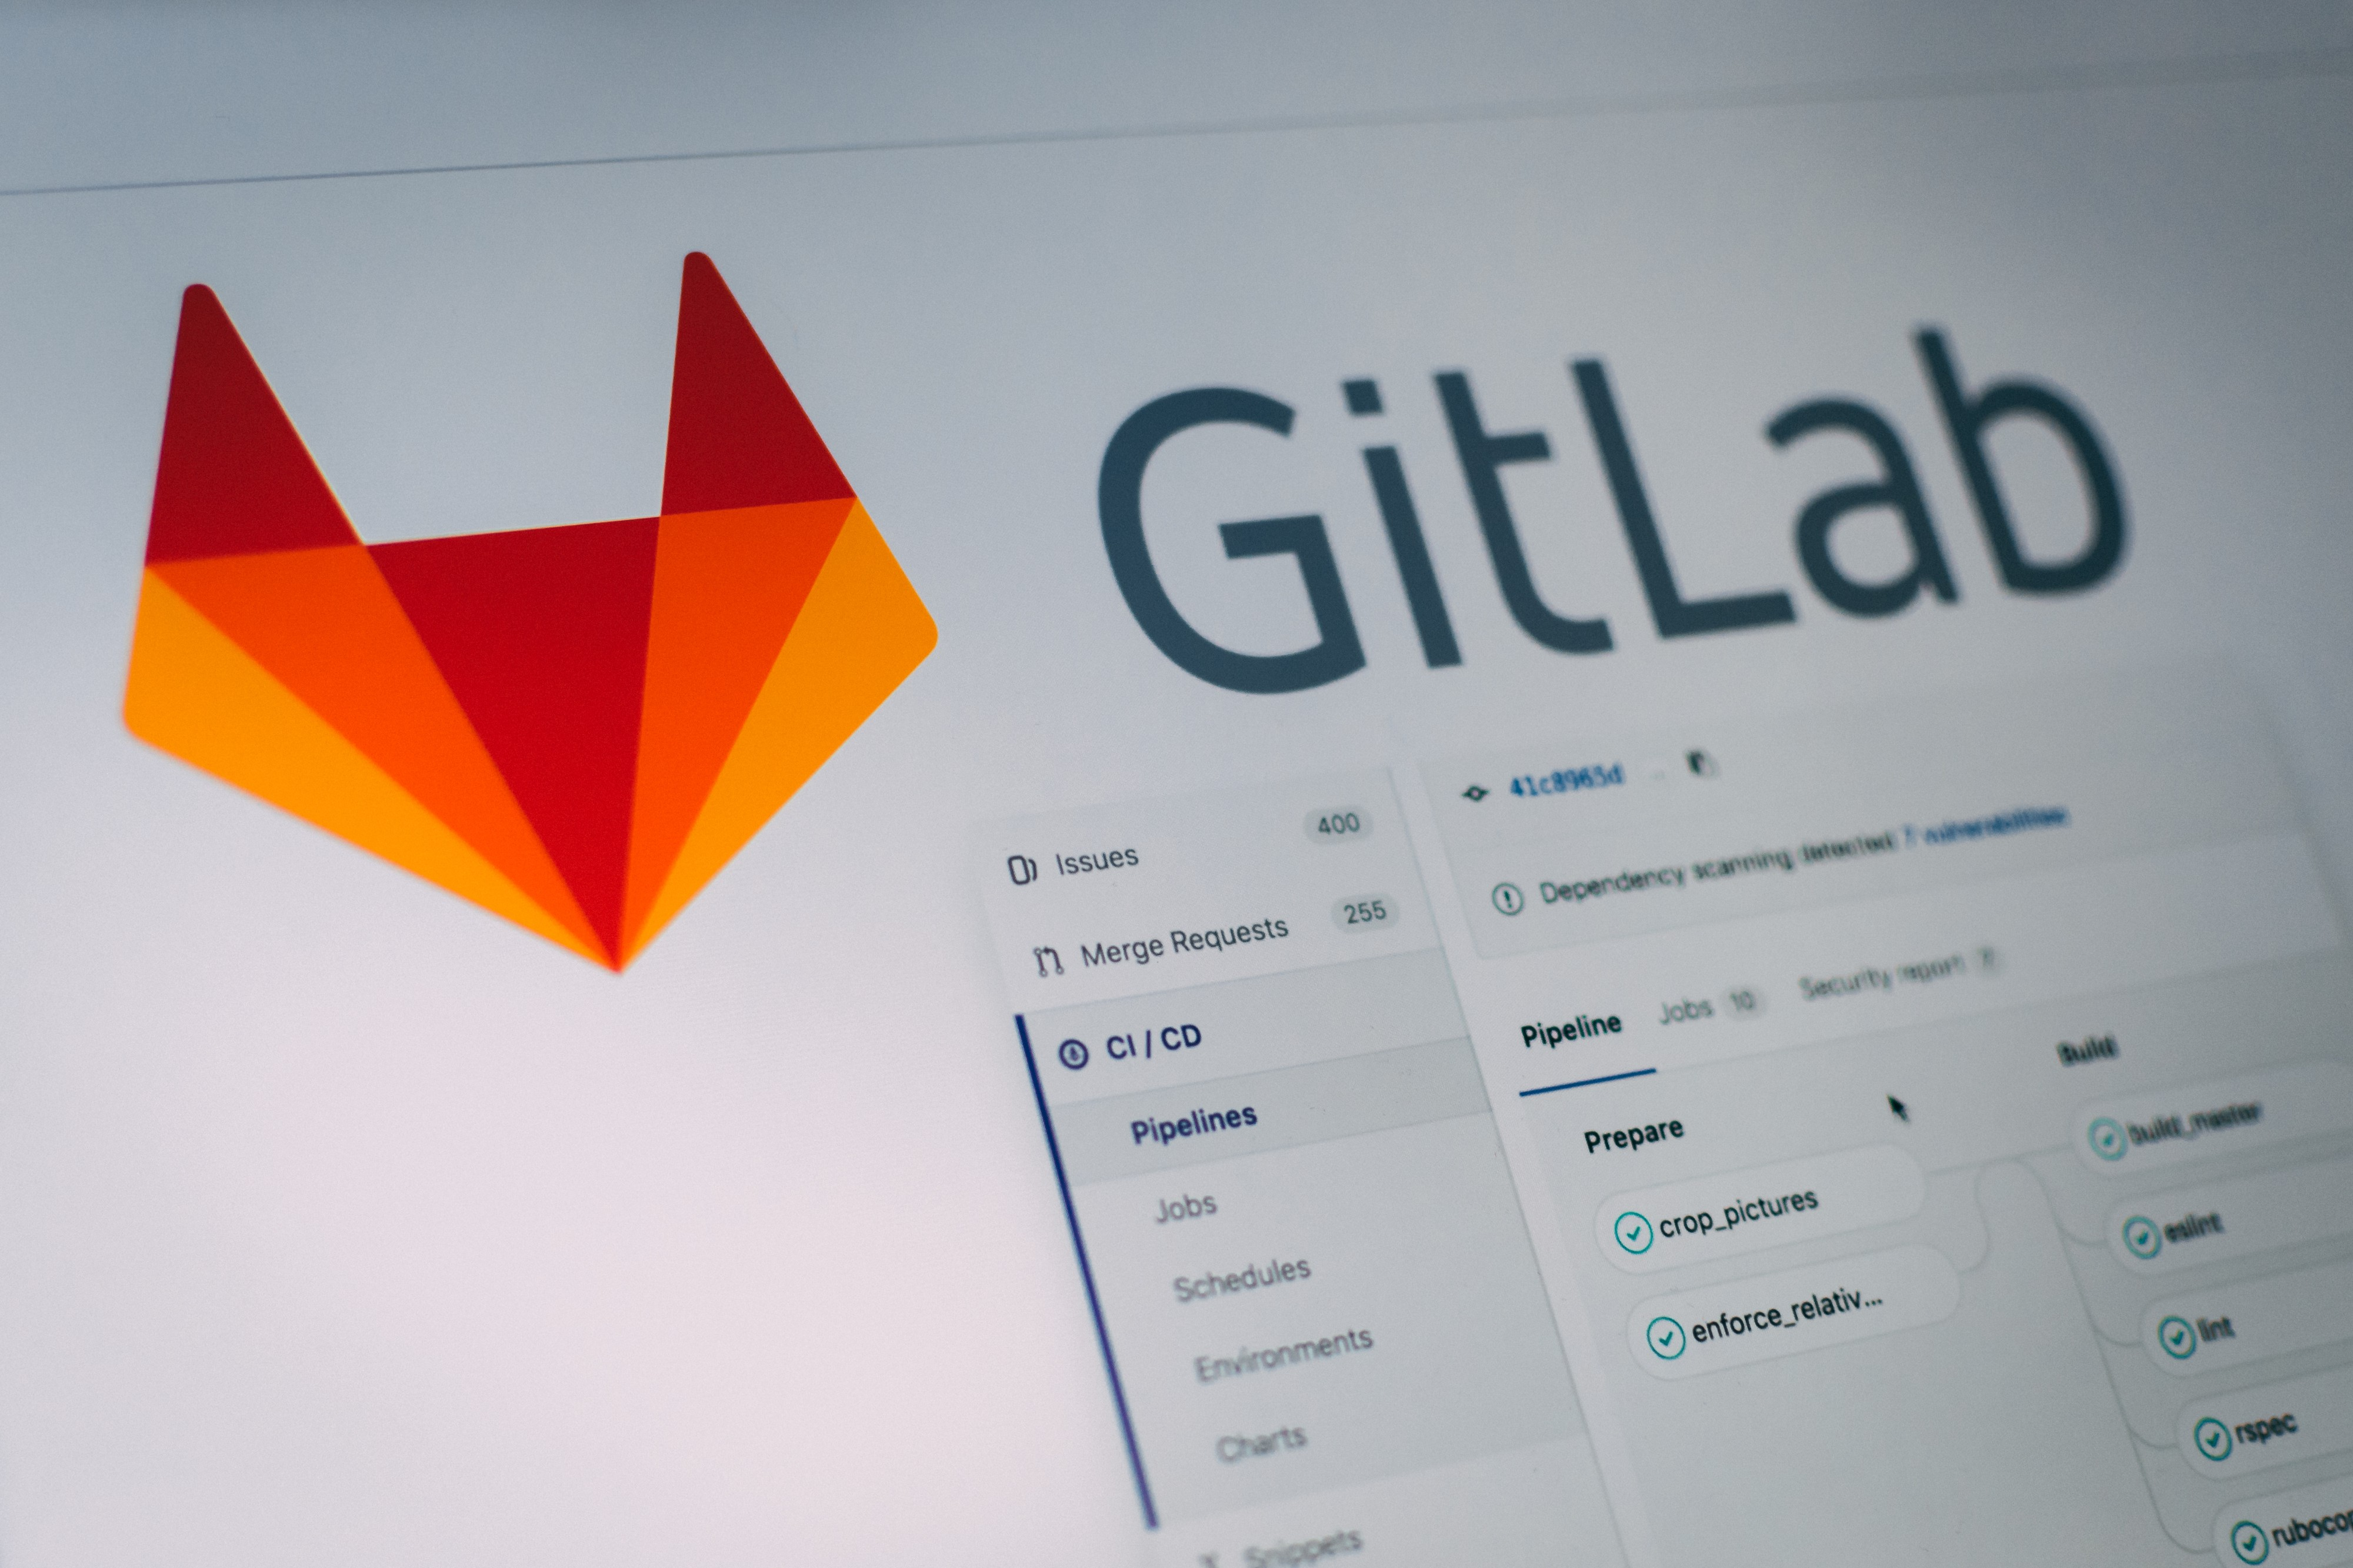 Renovate Your GitLab Projects Automatically - Mike Barkmin